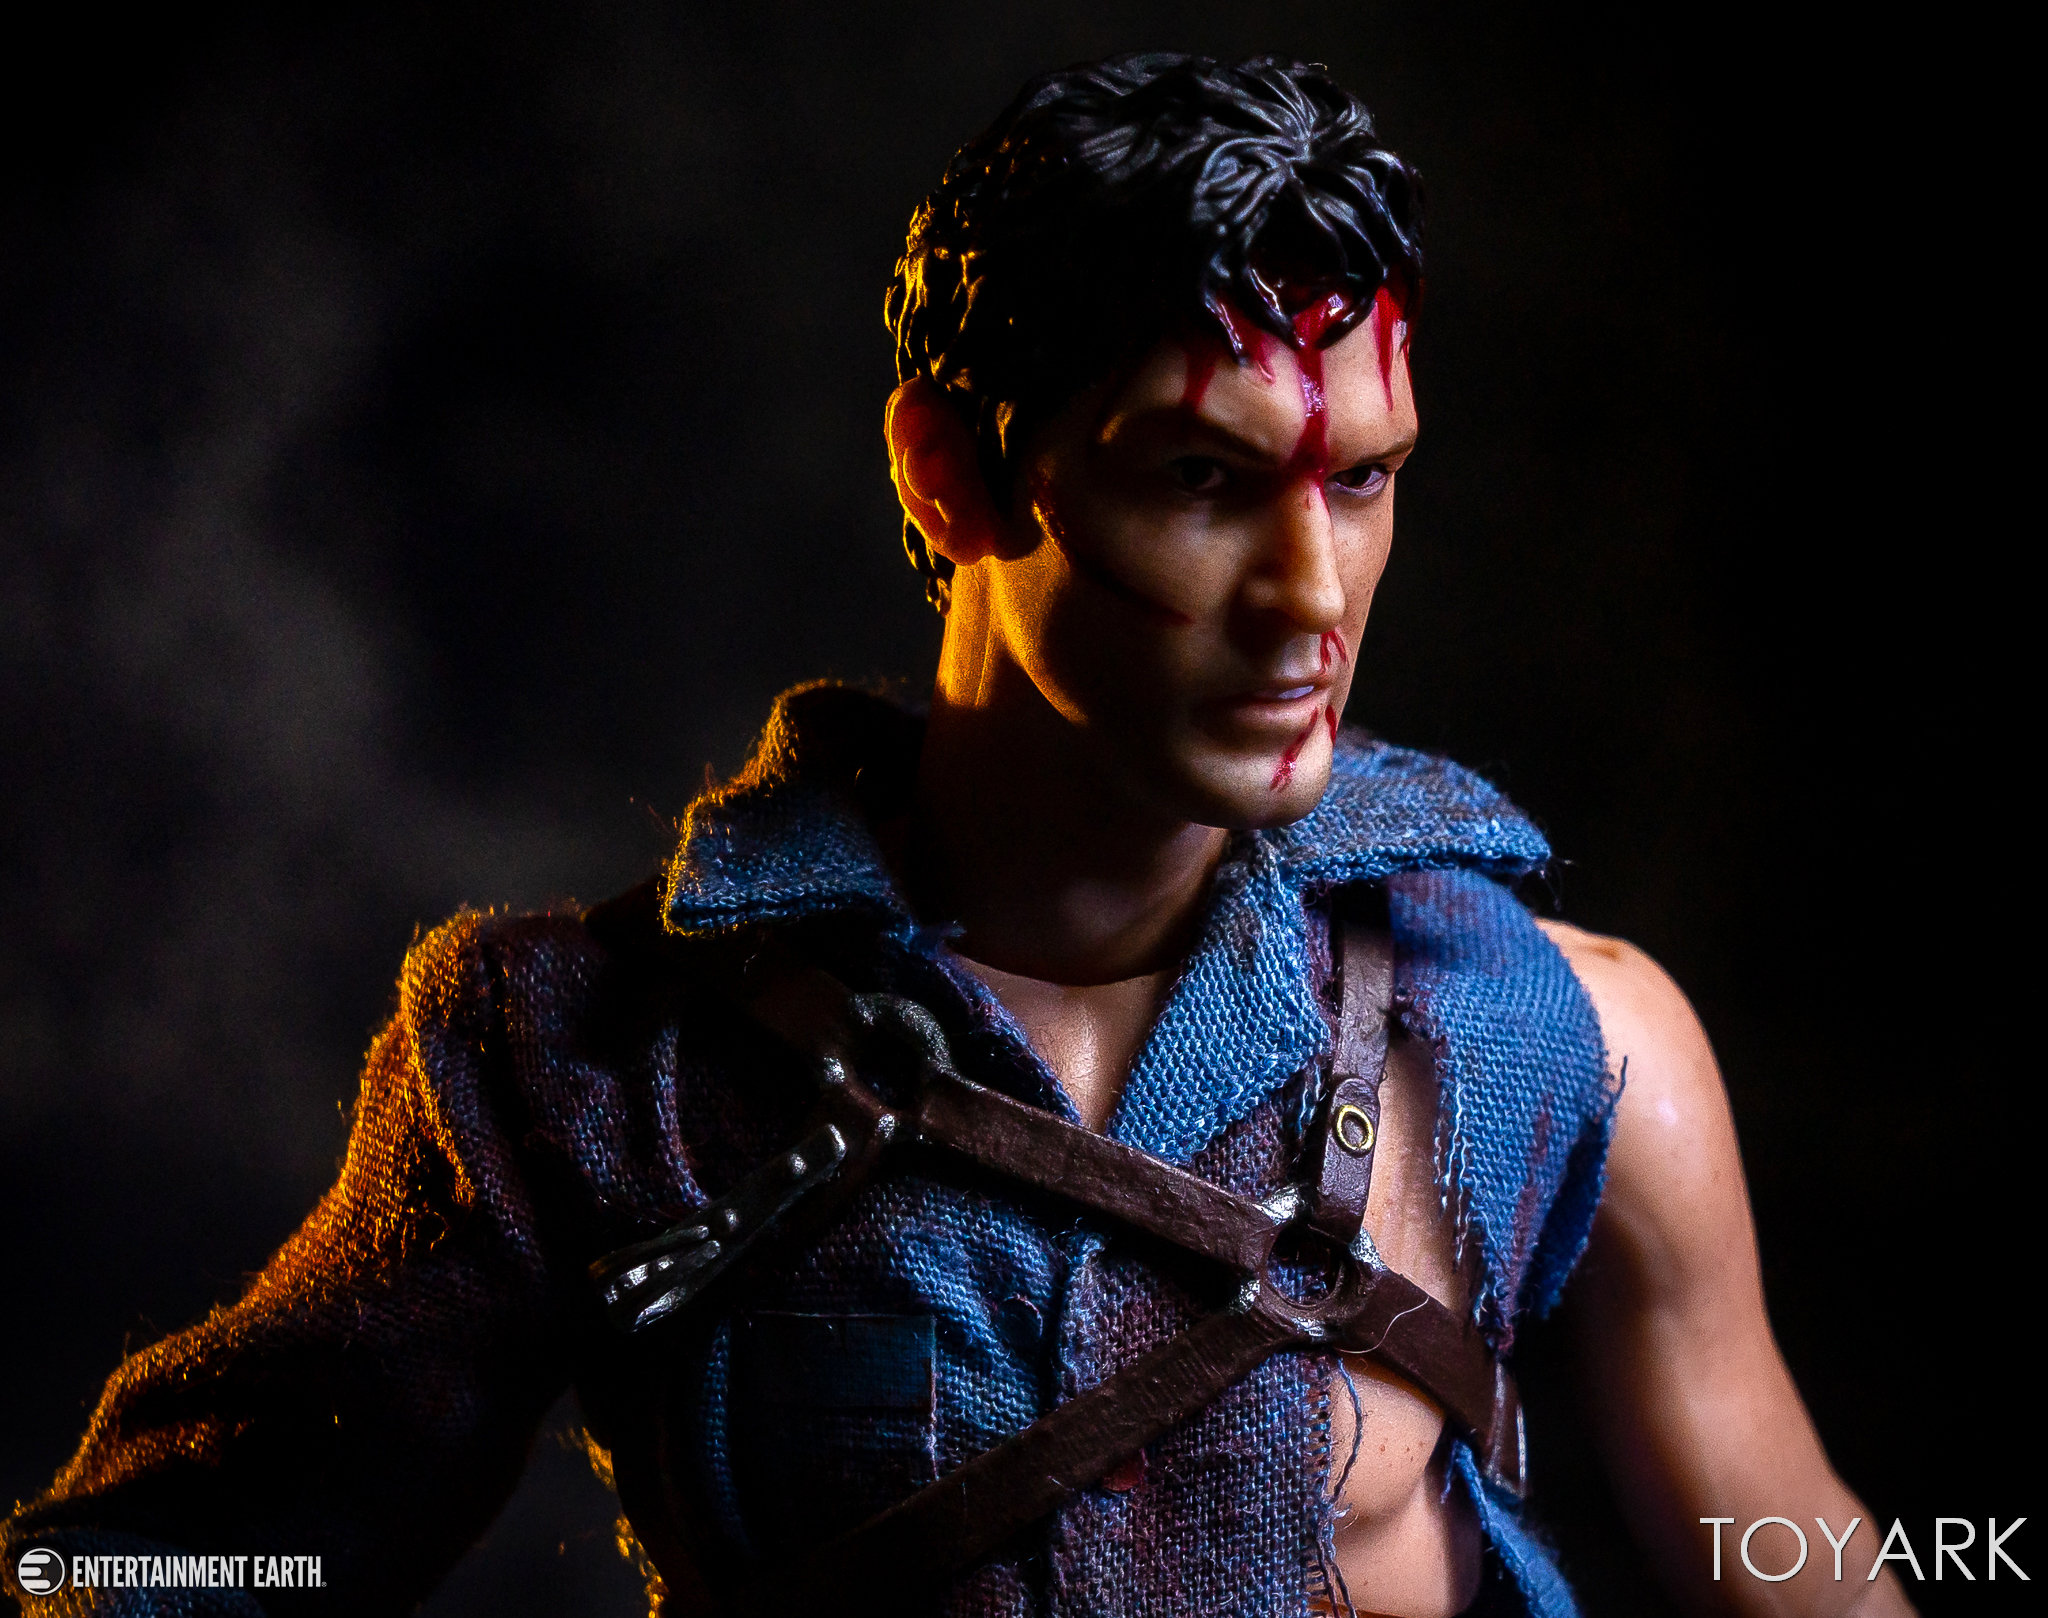 https://news.toyark.com/wp-content/uploads/sites/4/2019/01/Mezco-One12-Evil-Dead-2-Ash-037.jpg